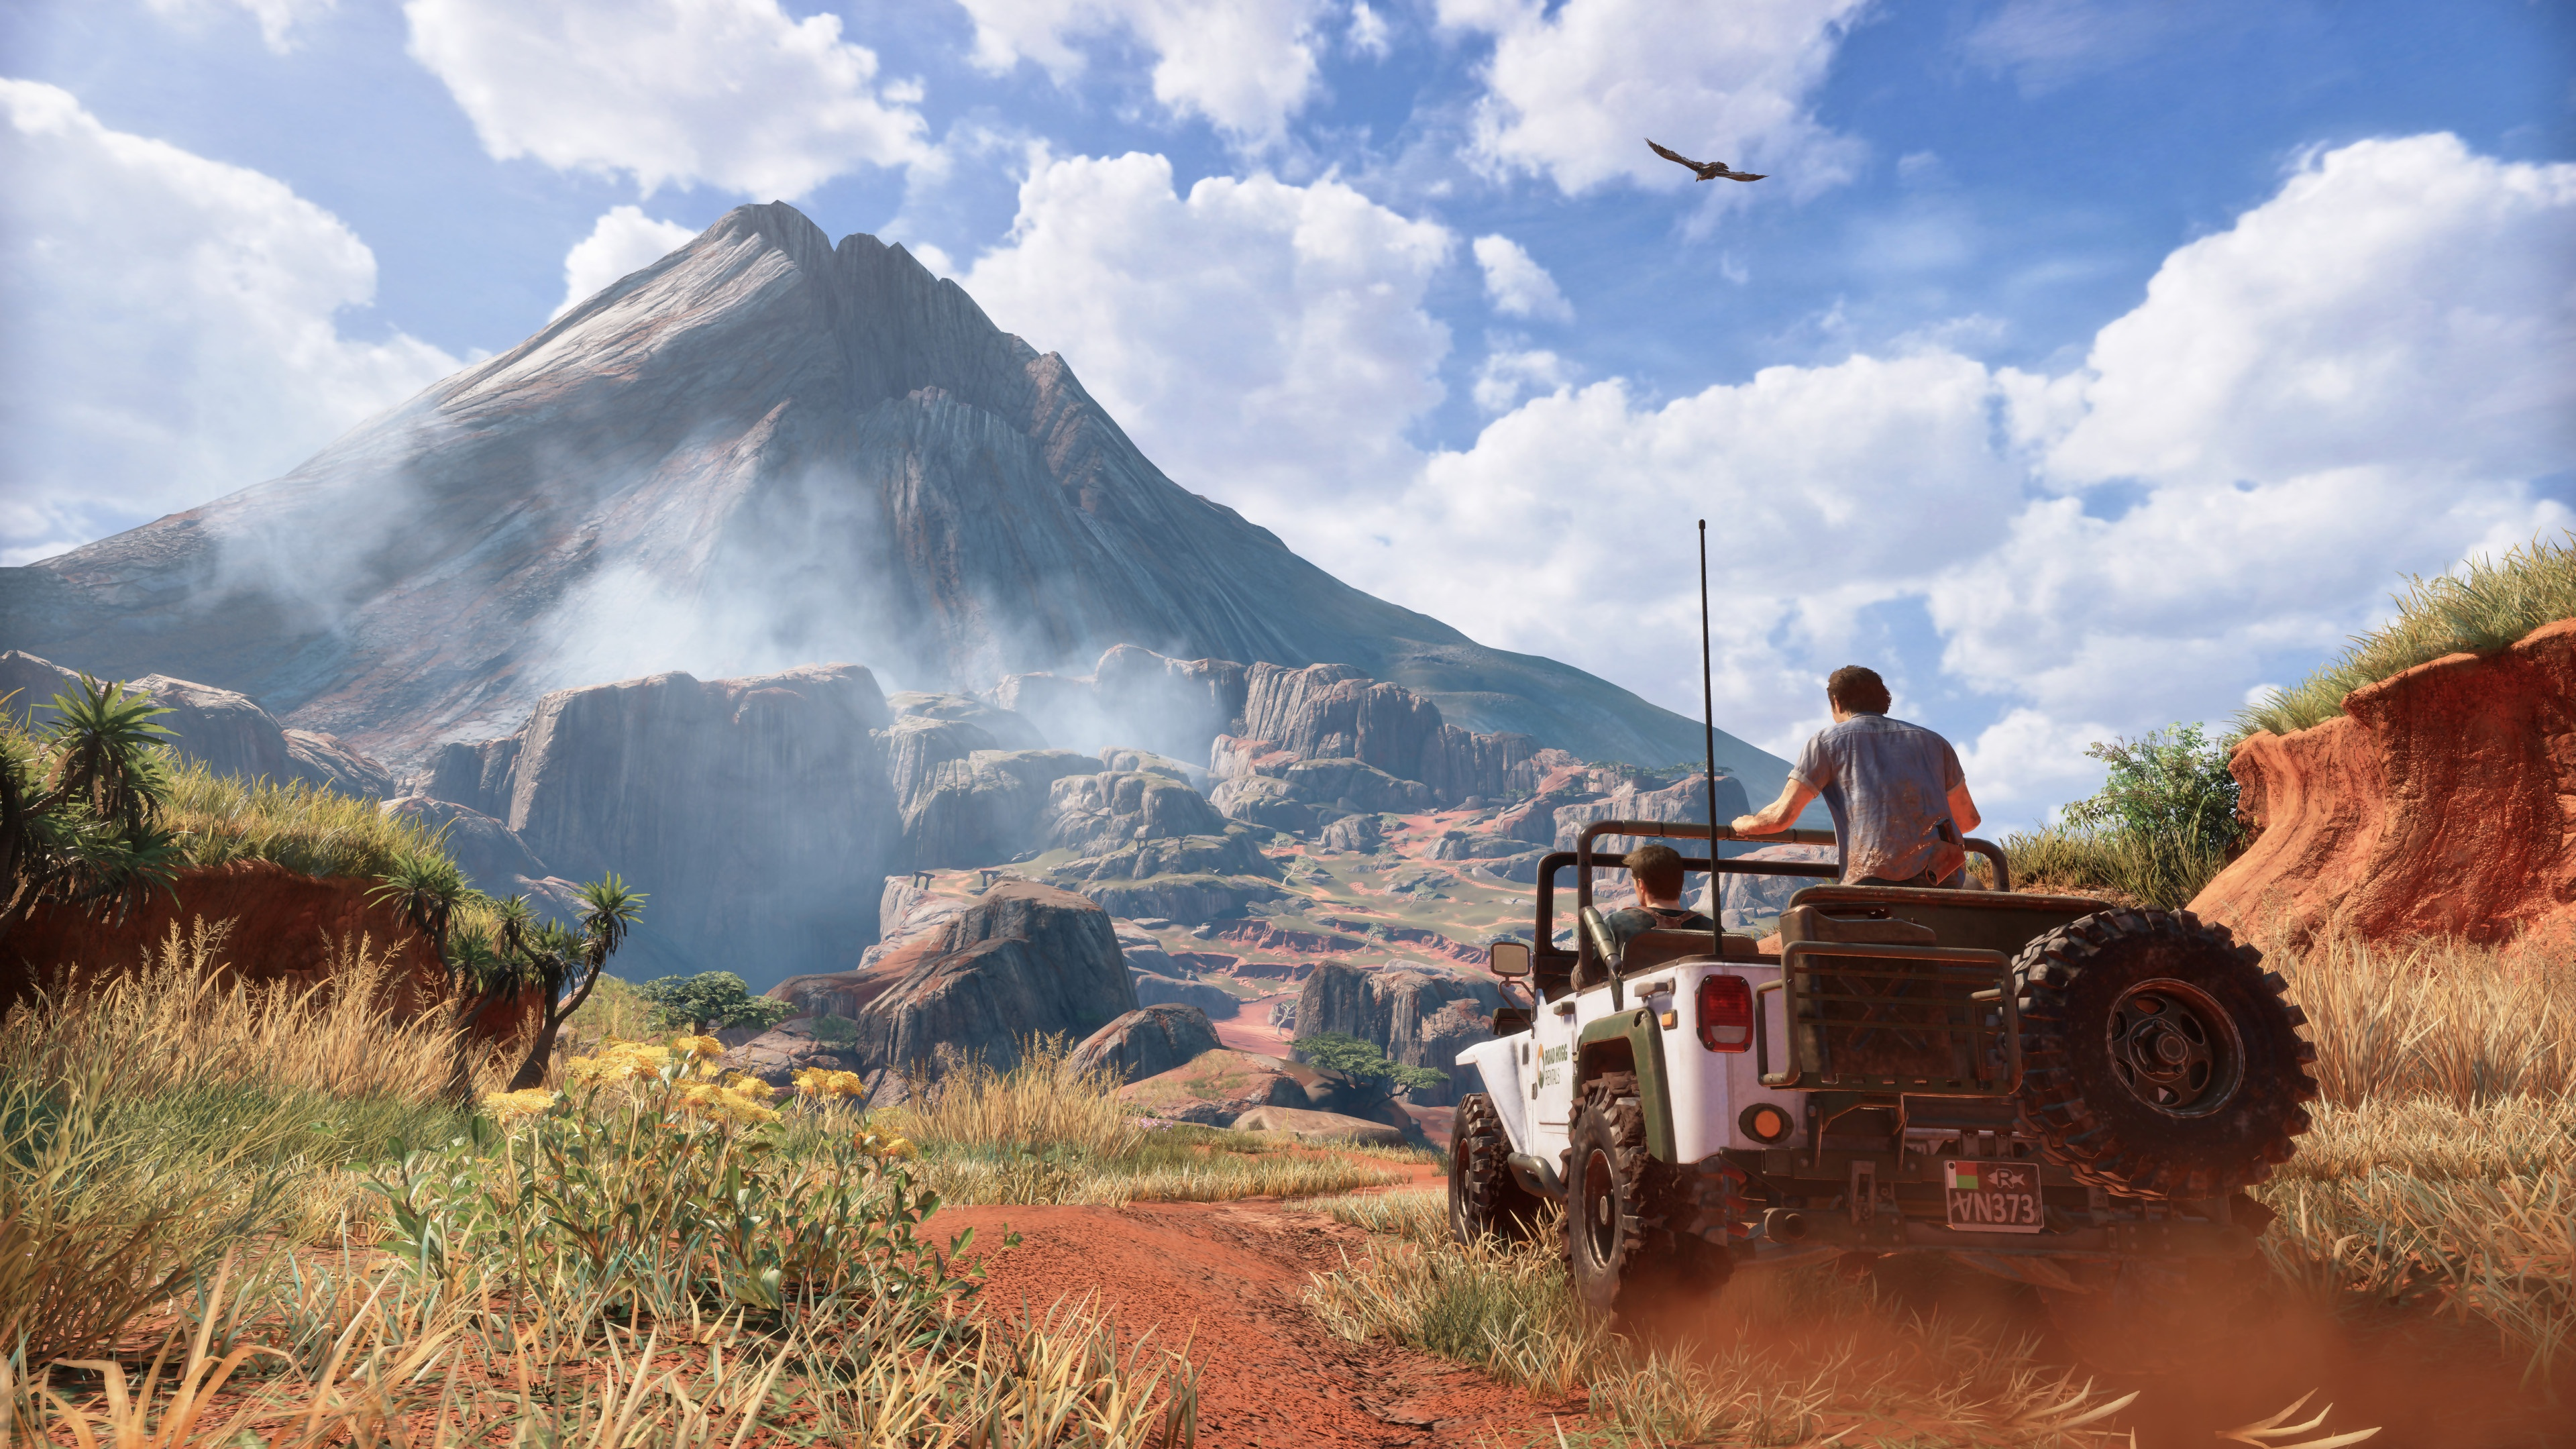 uncharted 4 a thiefs end ps4 game wallpapers in jpg format for free